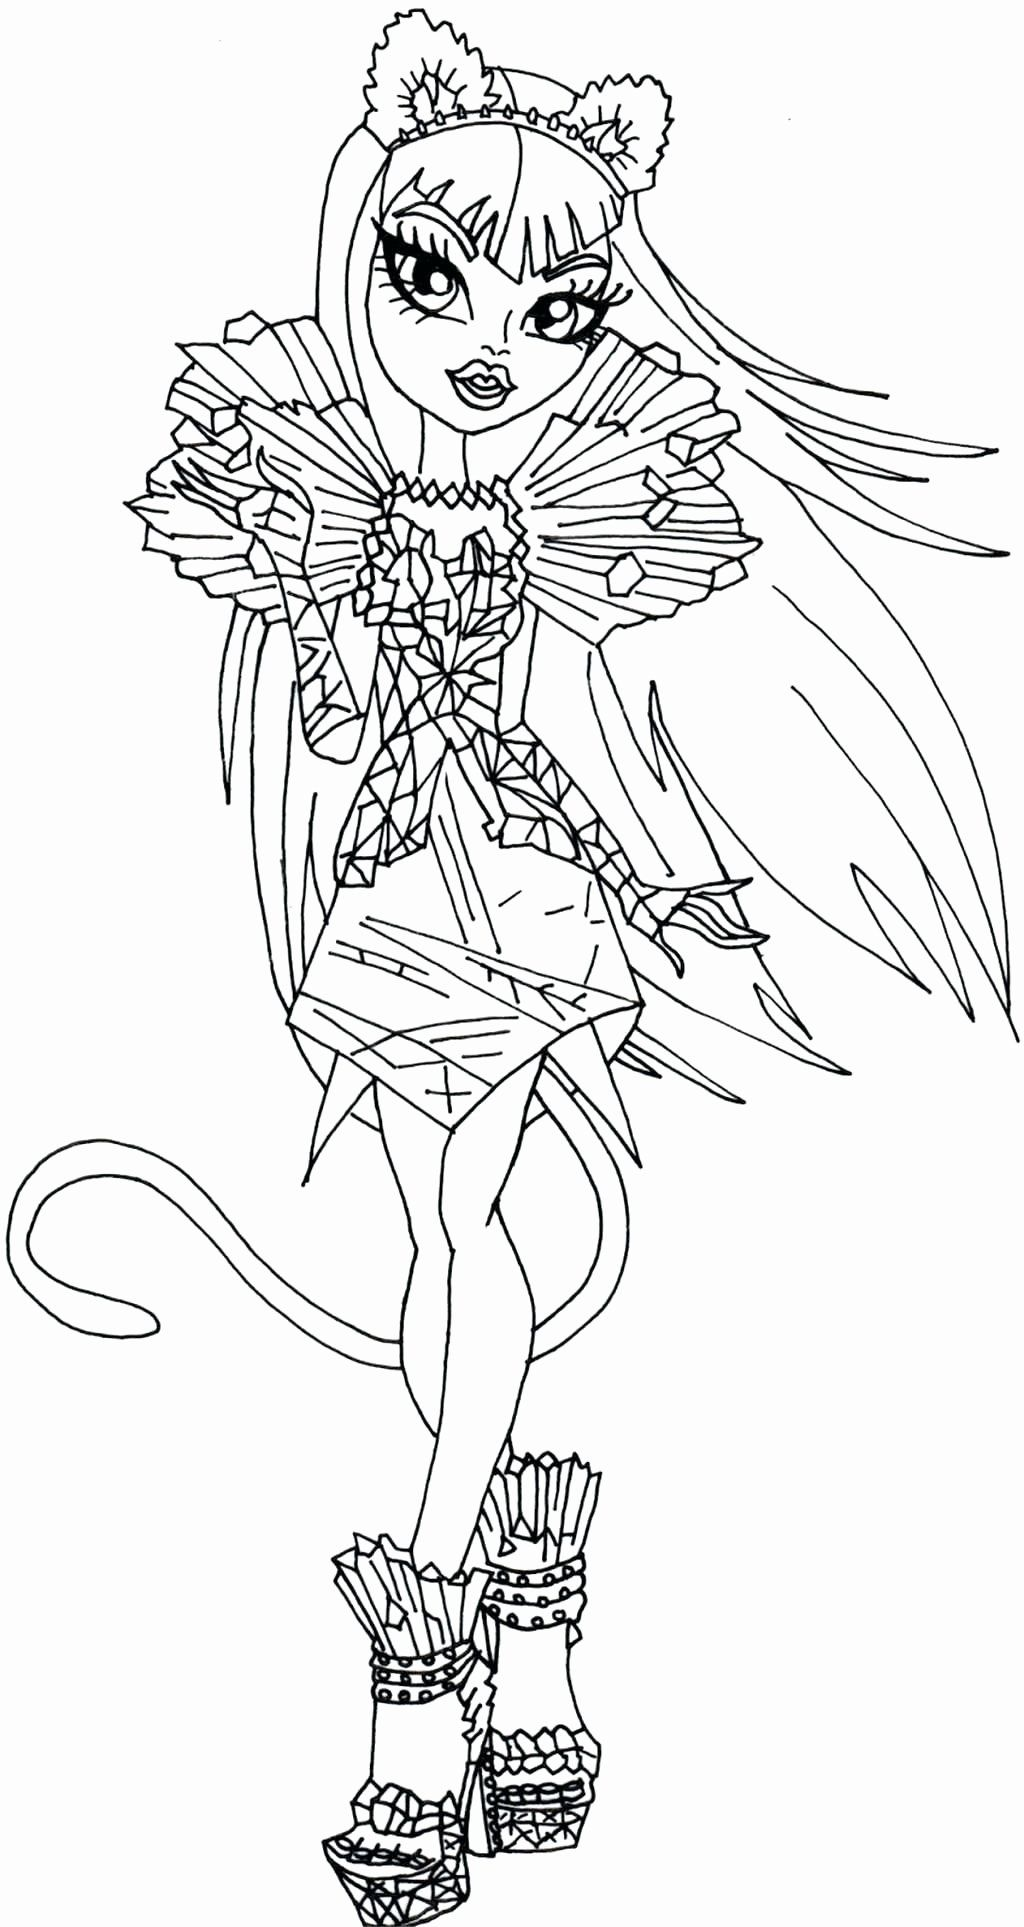 Monster High Coloring Page Elegant Coloring Page Coloring For Kids Monster High Page Children Monster Coloring Pages Coloring Pages Horse Coloring Pages